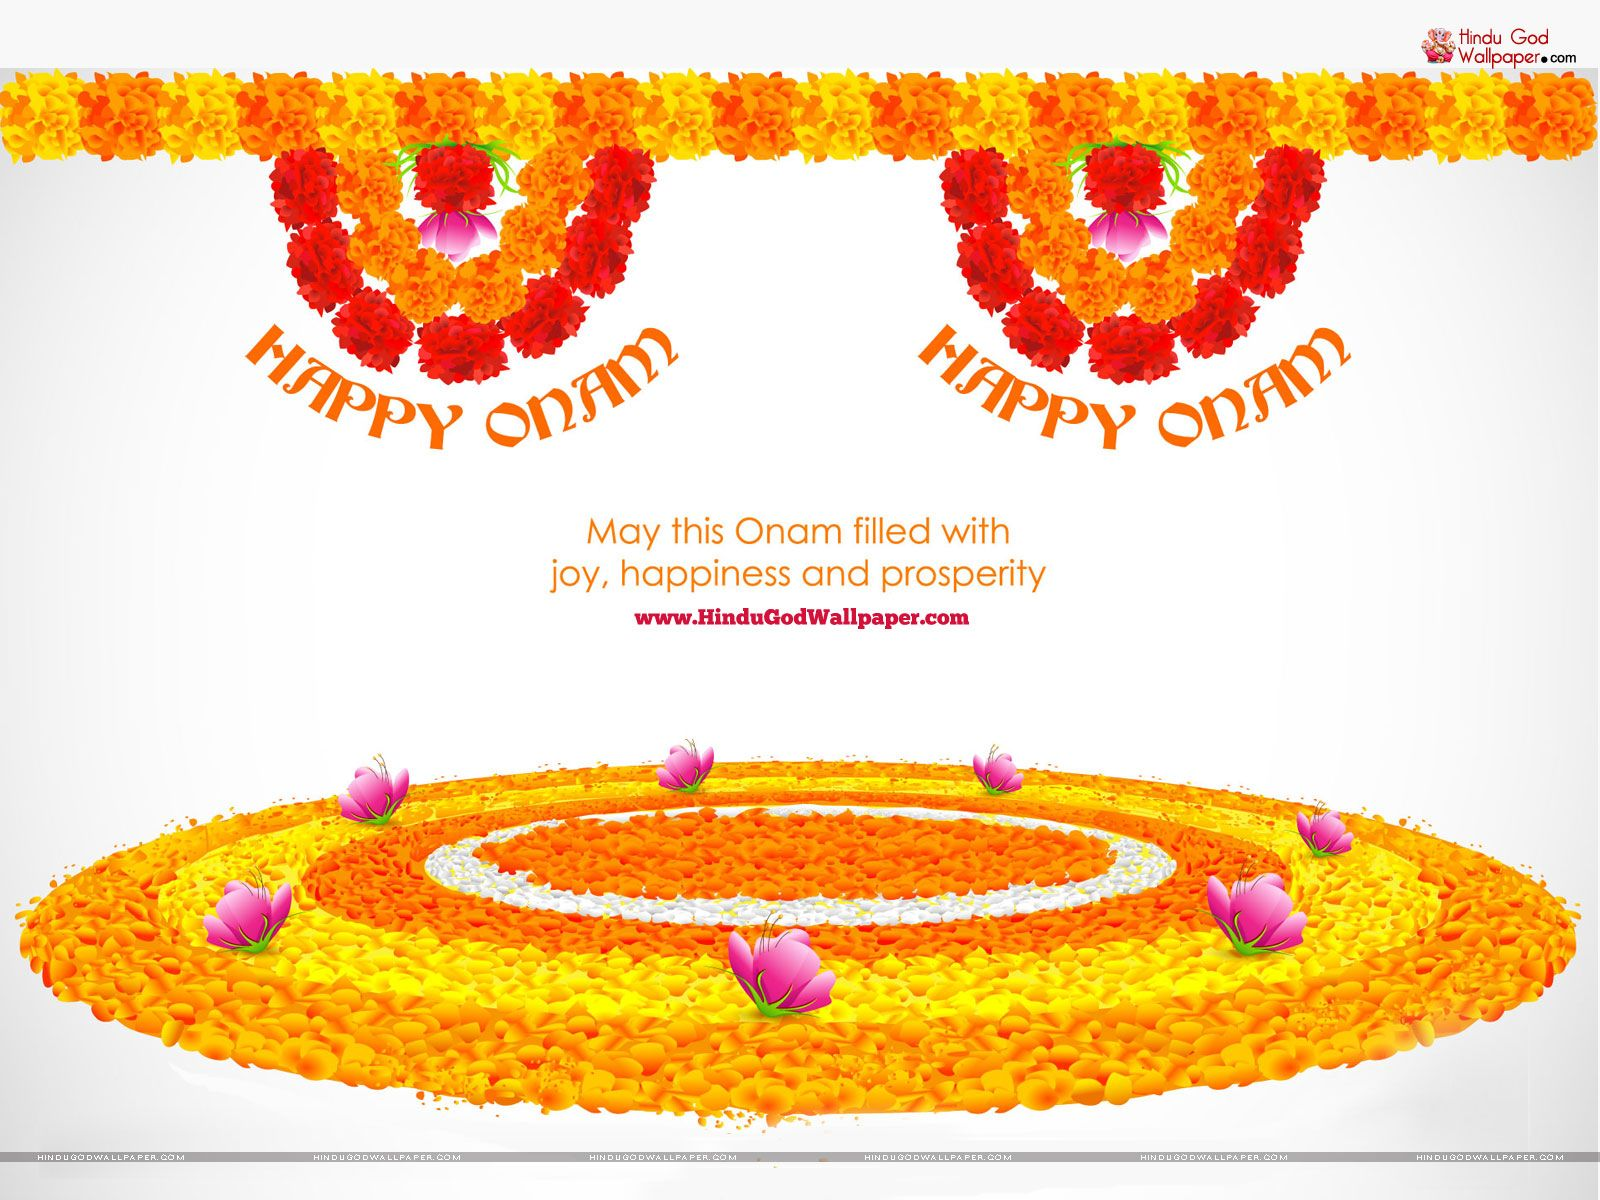 Onam Pookalam Wallpapers & Pictures HD Free Download